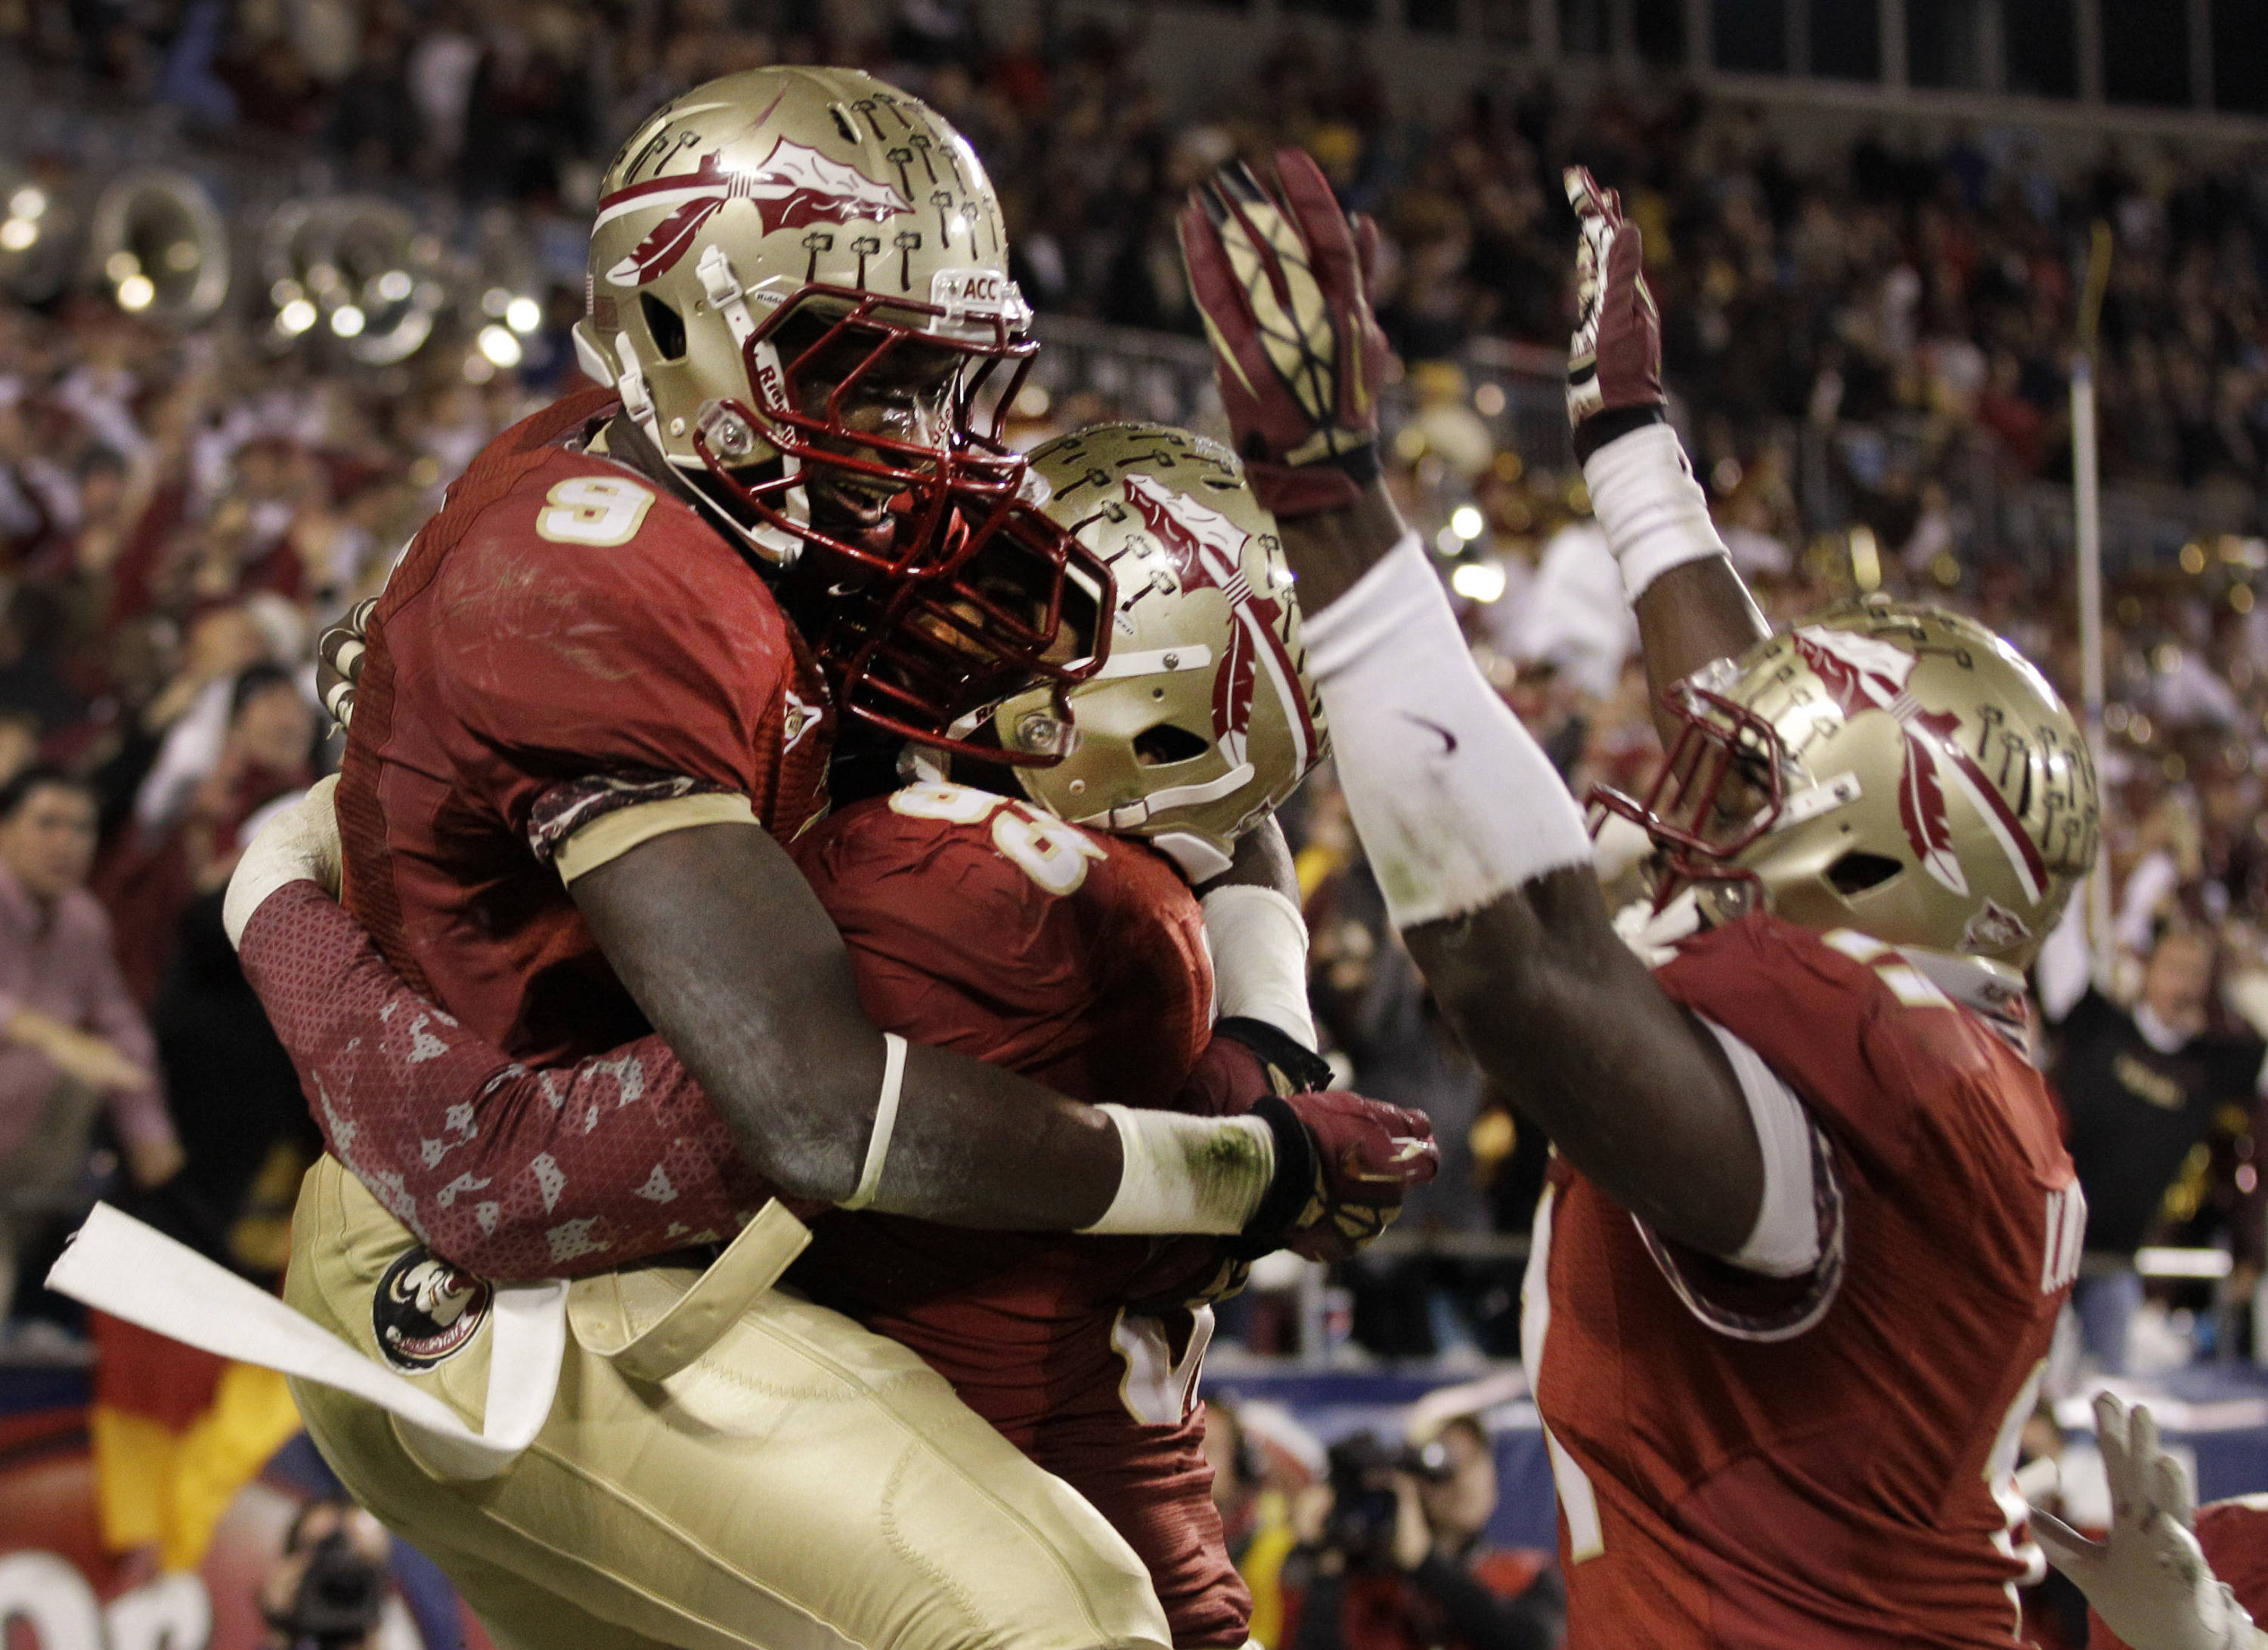 Florida State's Karlos Williams (9) celebrates his interception of a Georgia Tech pass with Everett Dawkins (93) and Vince Williams (11) during the second half. (AP Photo/Chuck Burton)